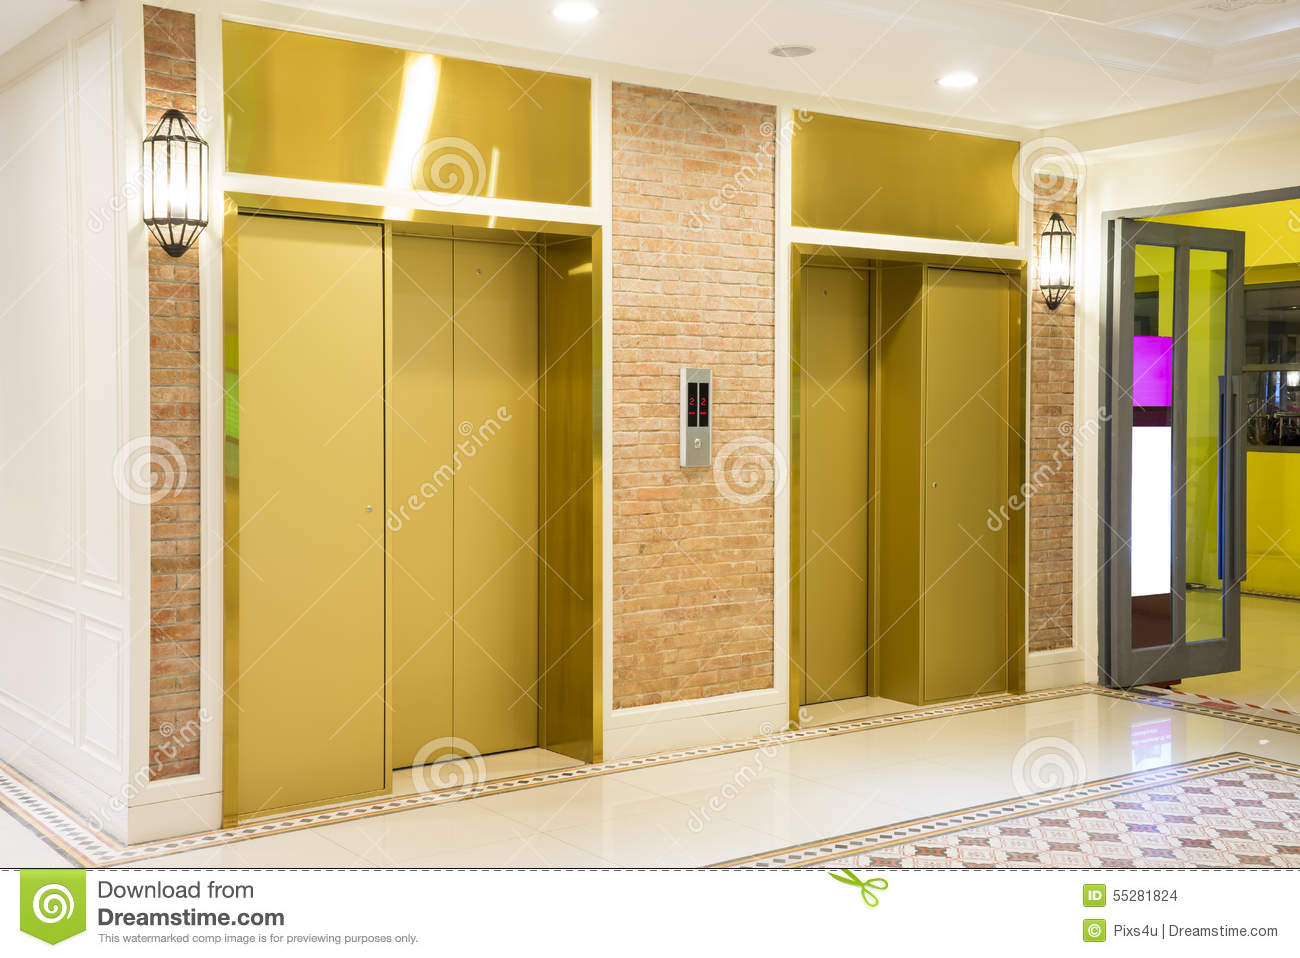 Two Elevator Doors Royalty Free Stock Image